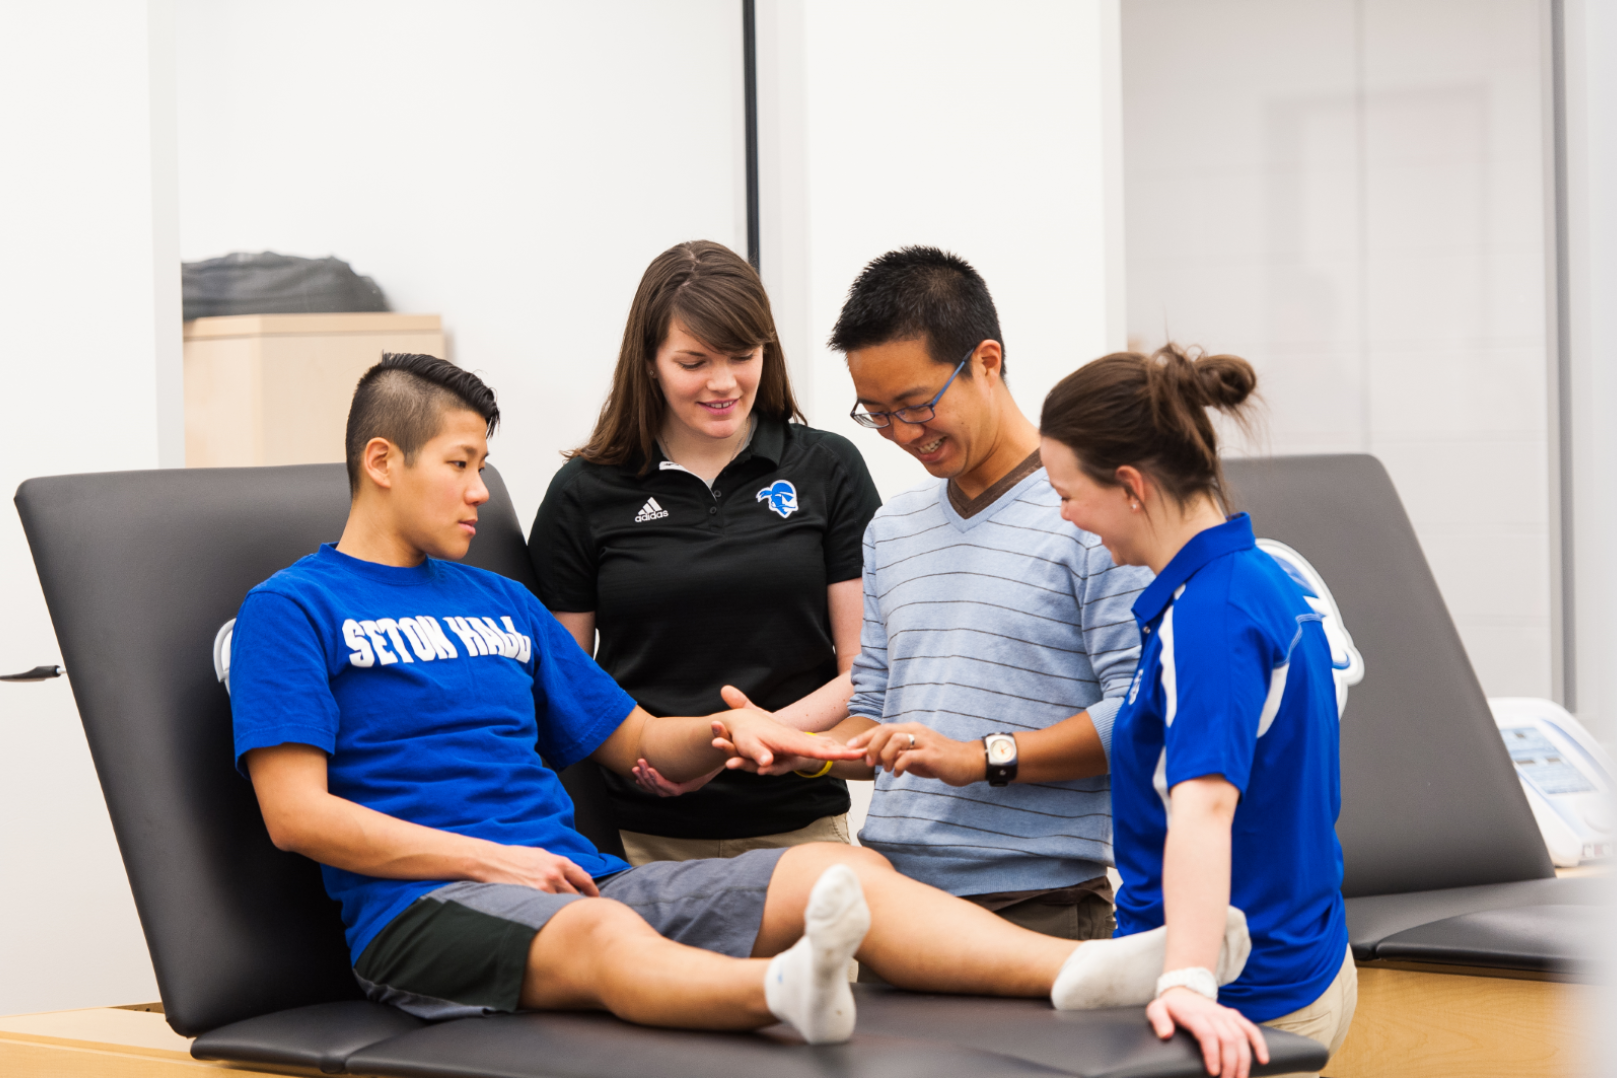 pursuing a medical path at seton hall university Four-year action plan to get into medical, dental or veterinary school freshman year goals: adjust and enjoy your academic and social life at college, remember school starts day one, studying starts day one.